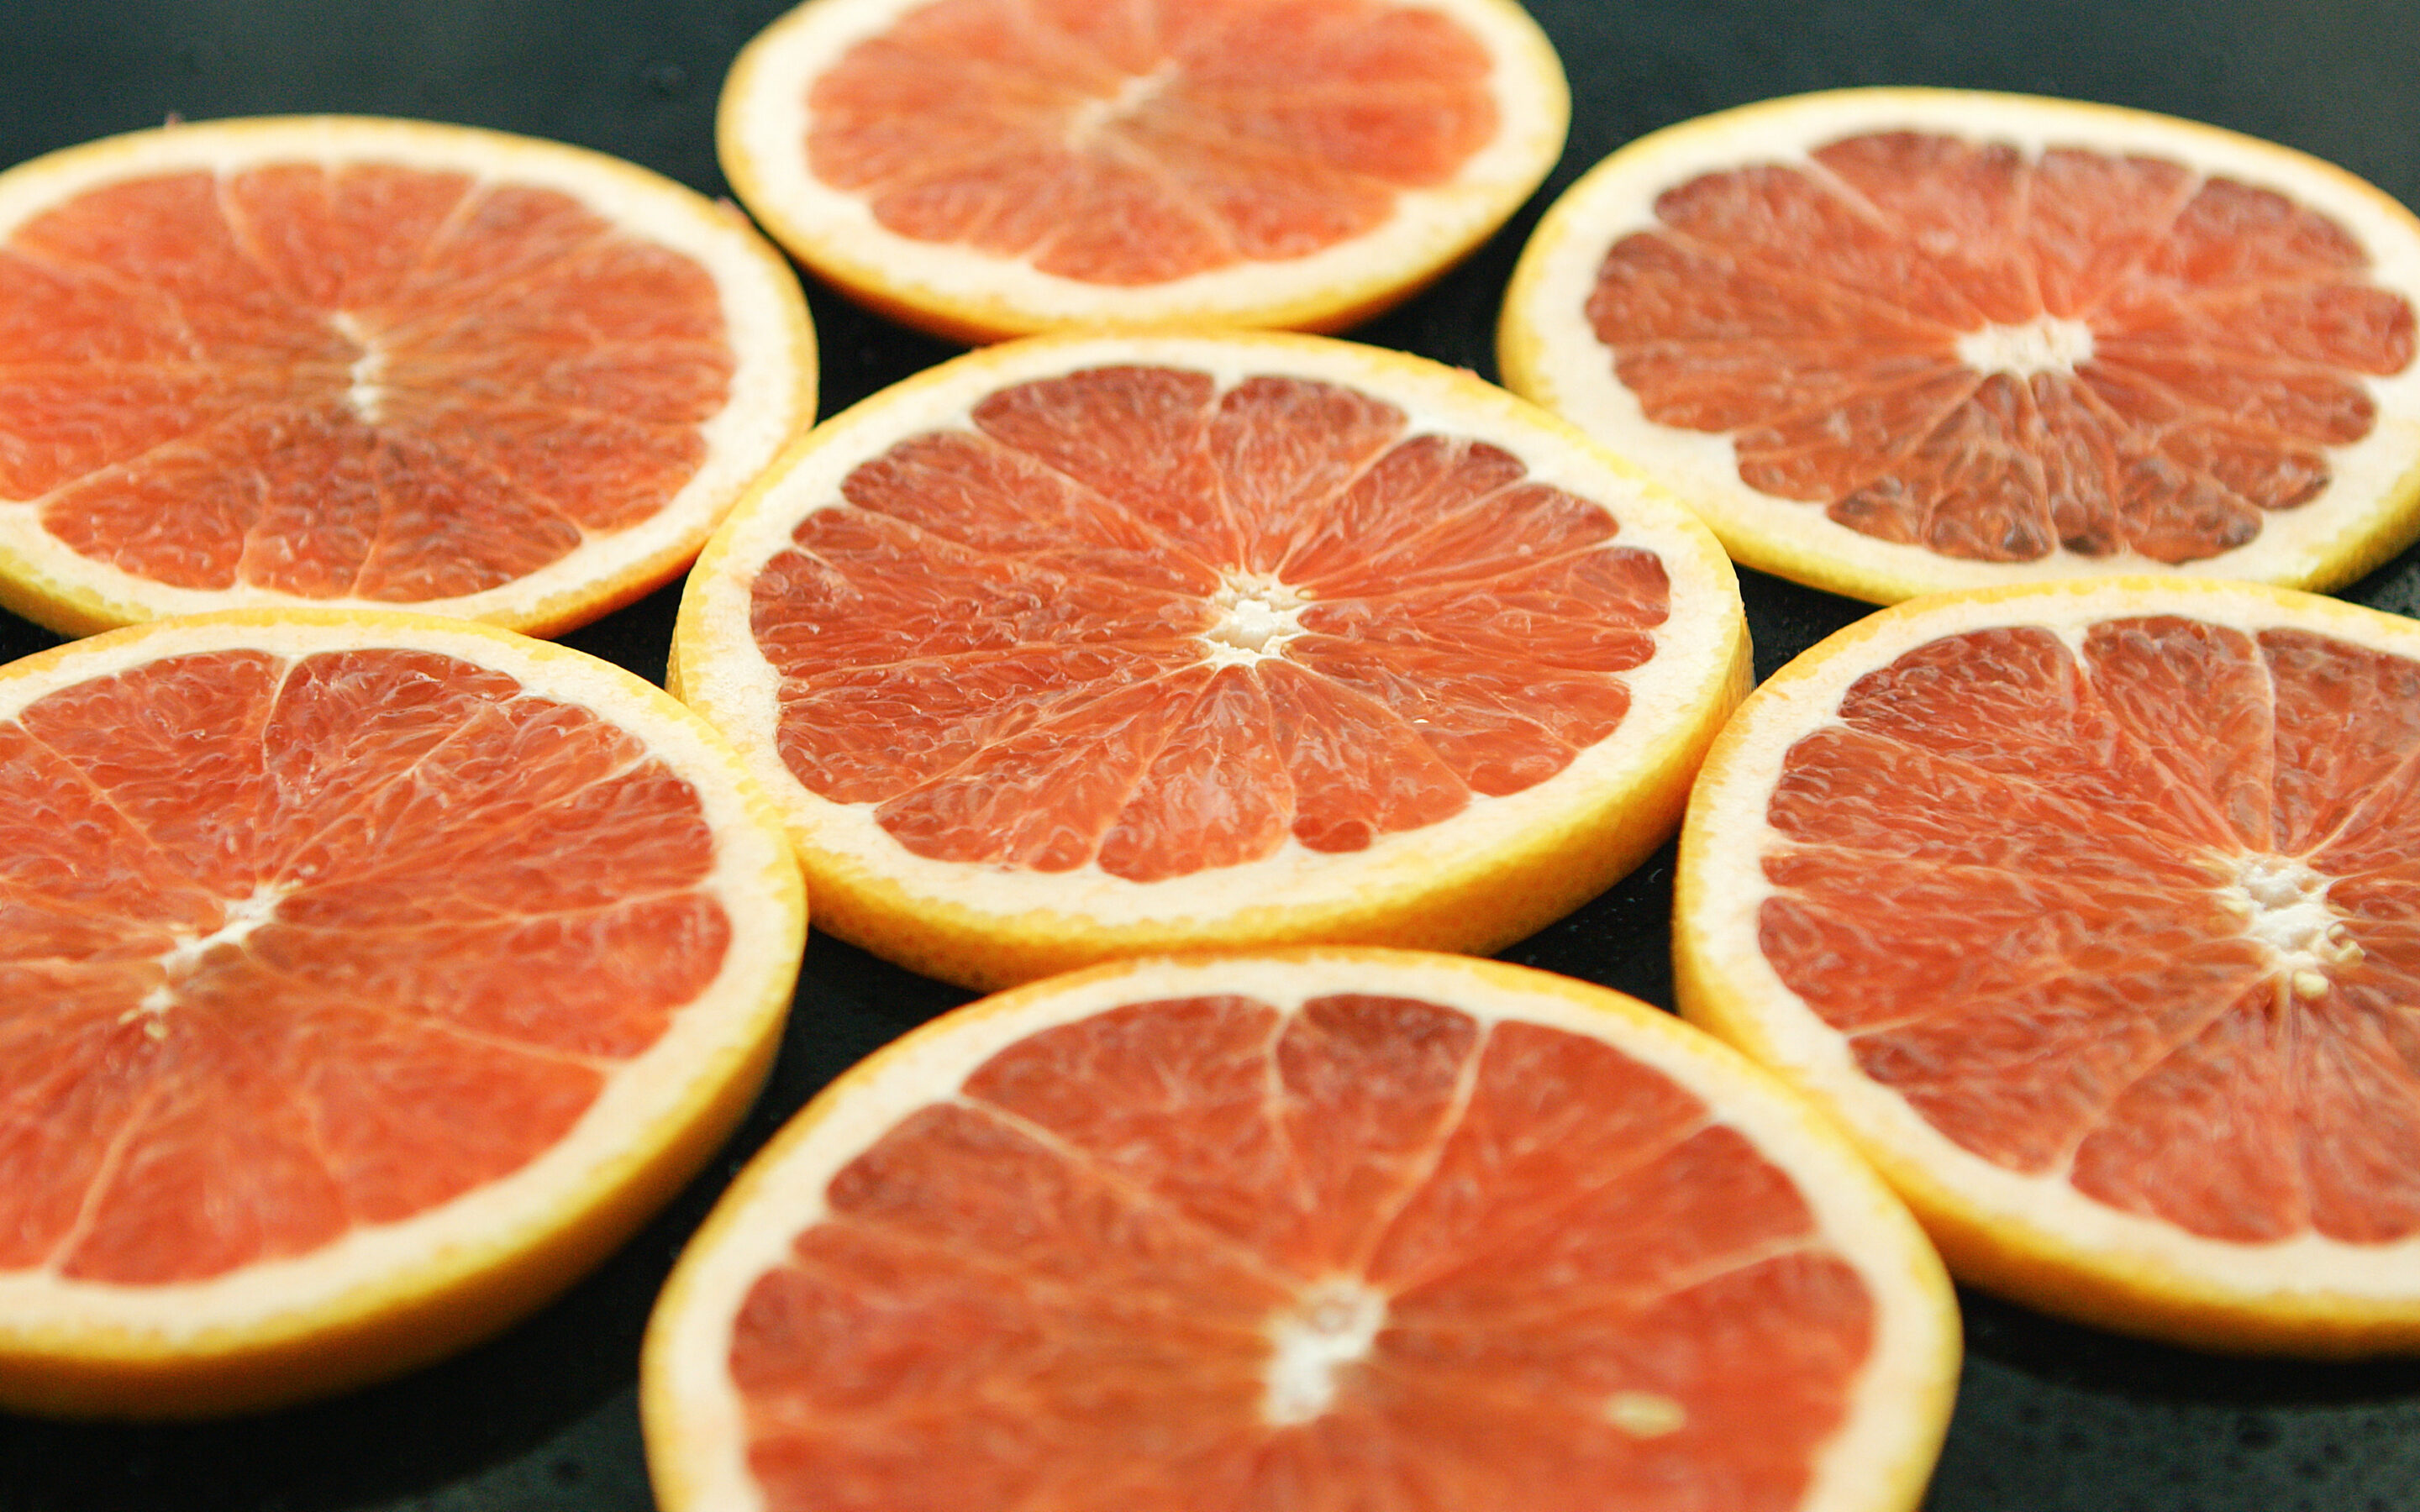 This morning, slicing up my wife's grapefruit….